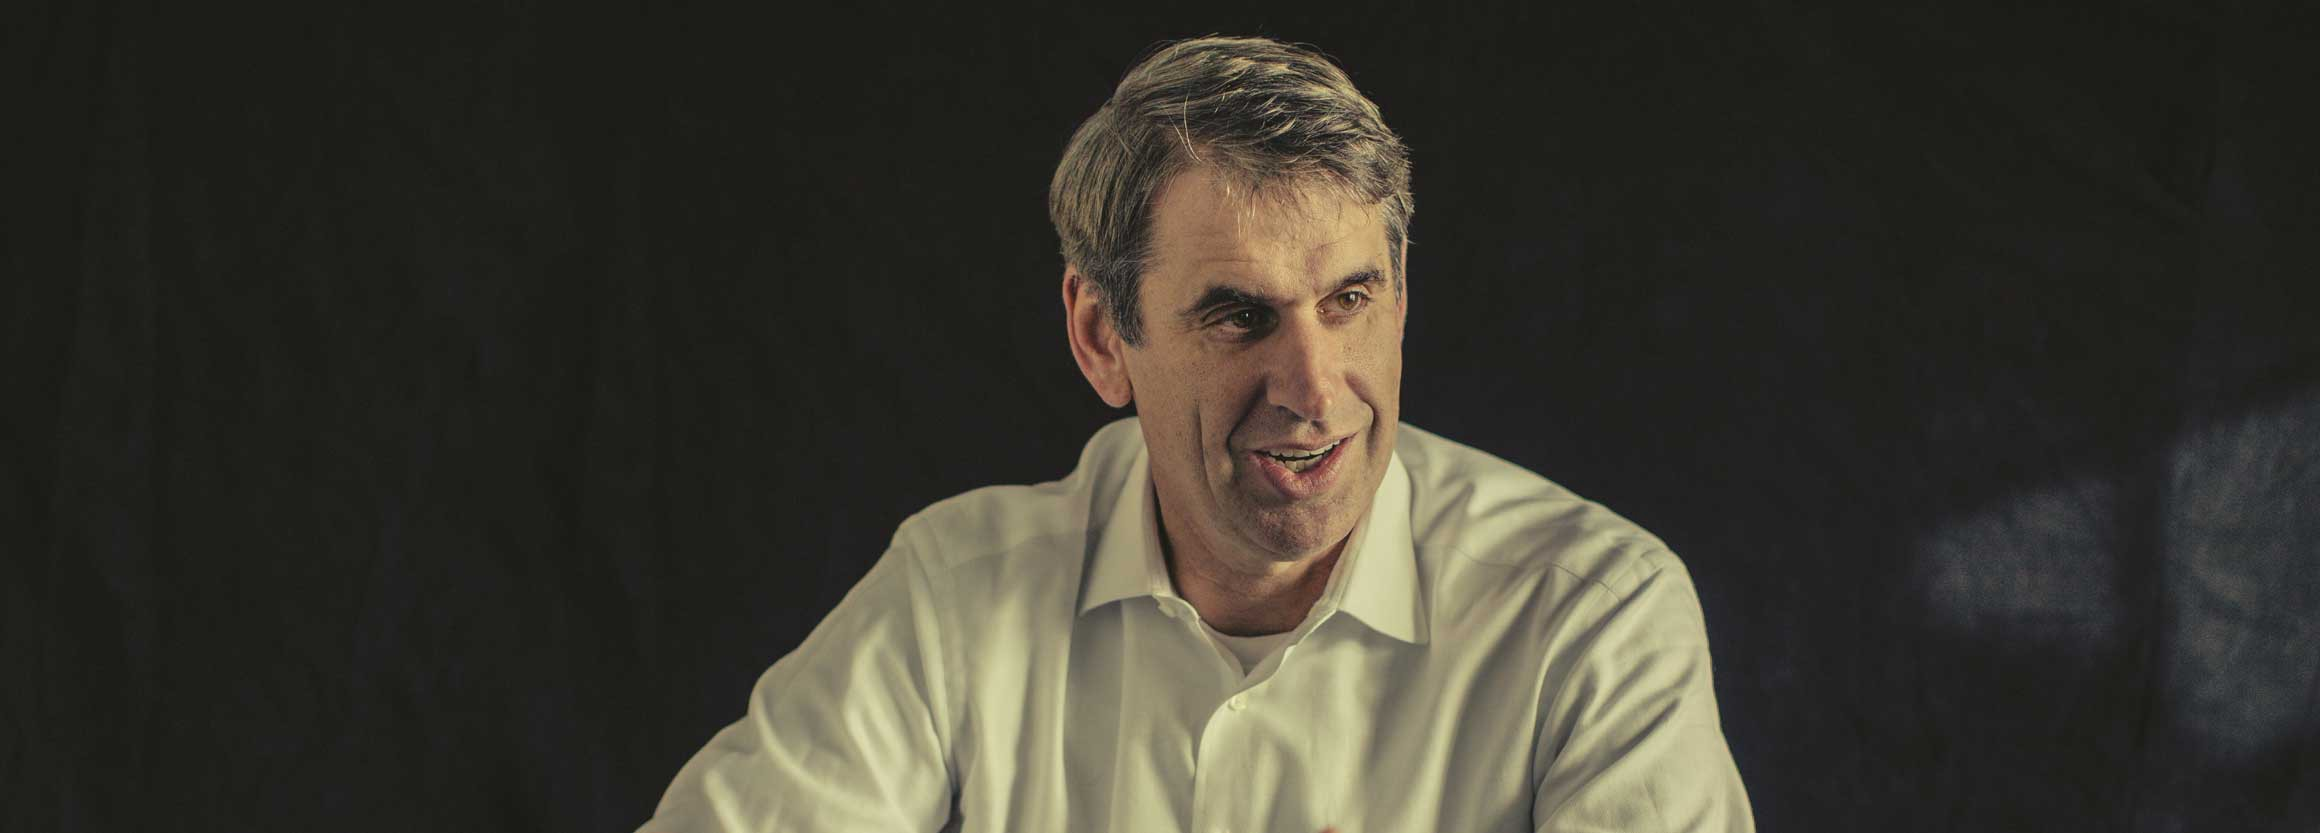 110be502b4 An Interview with Venture Capitalist Bill Gurley